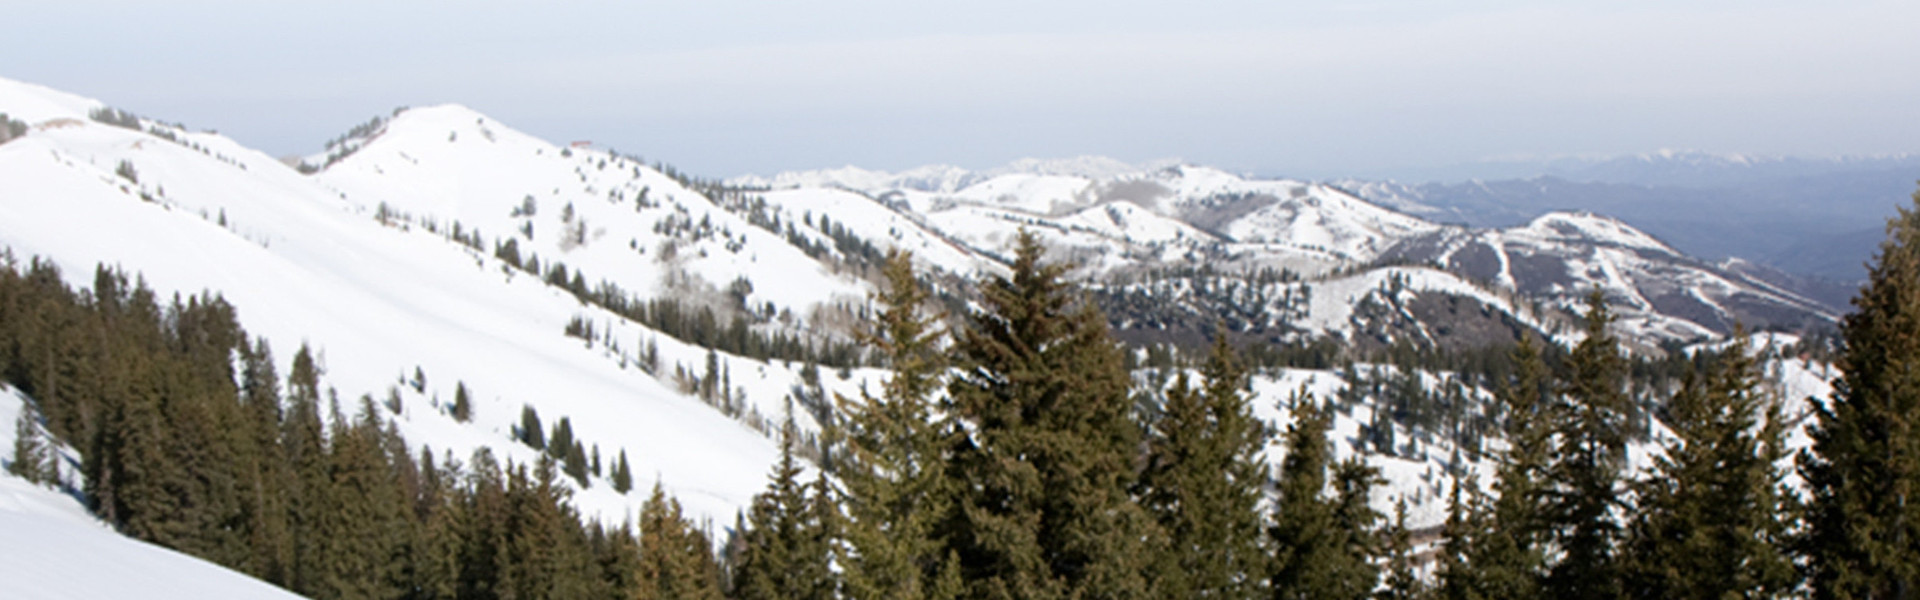 Weddings For Couples Over 40 In Park City - Park City Mountains